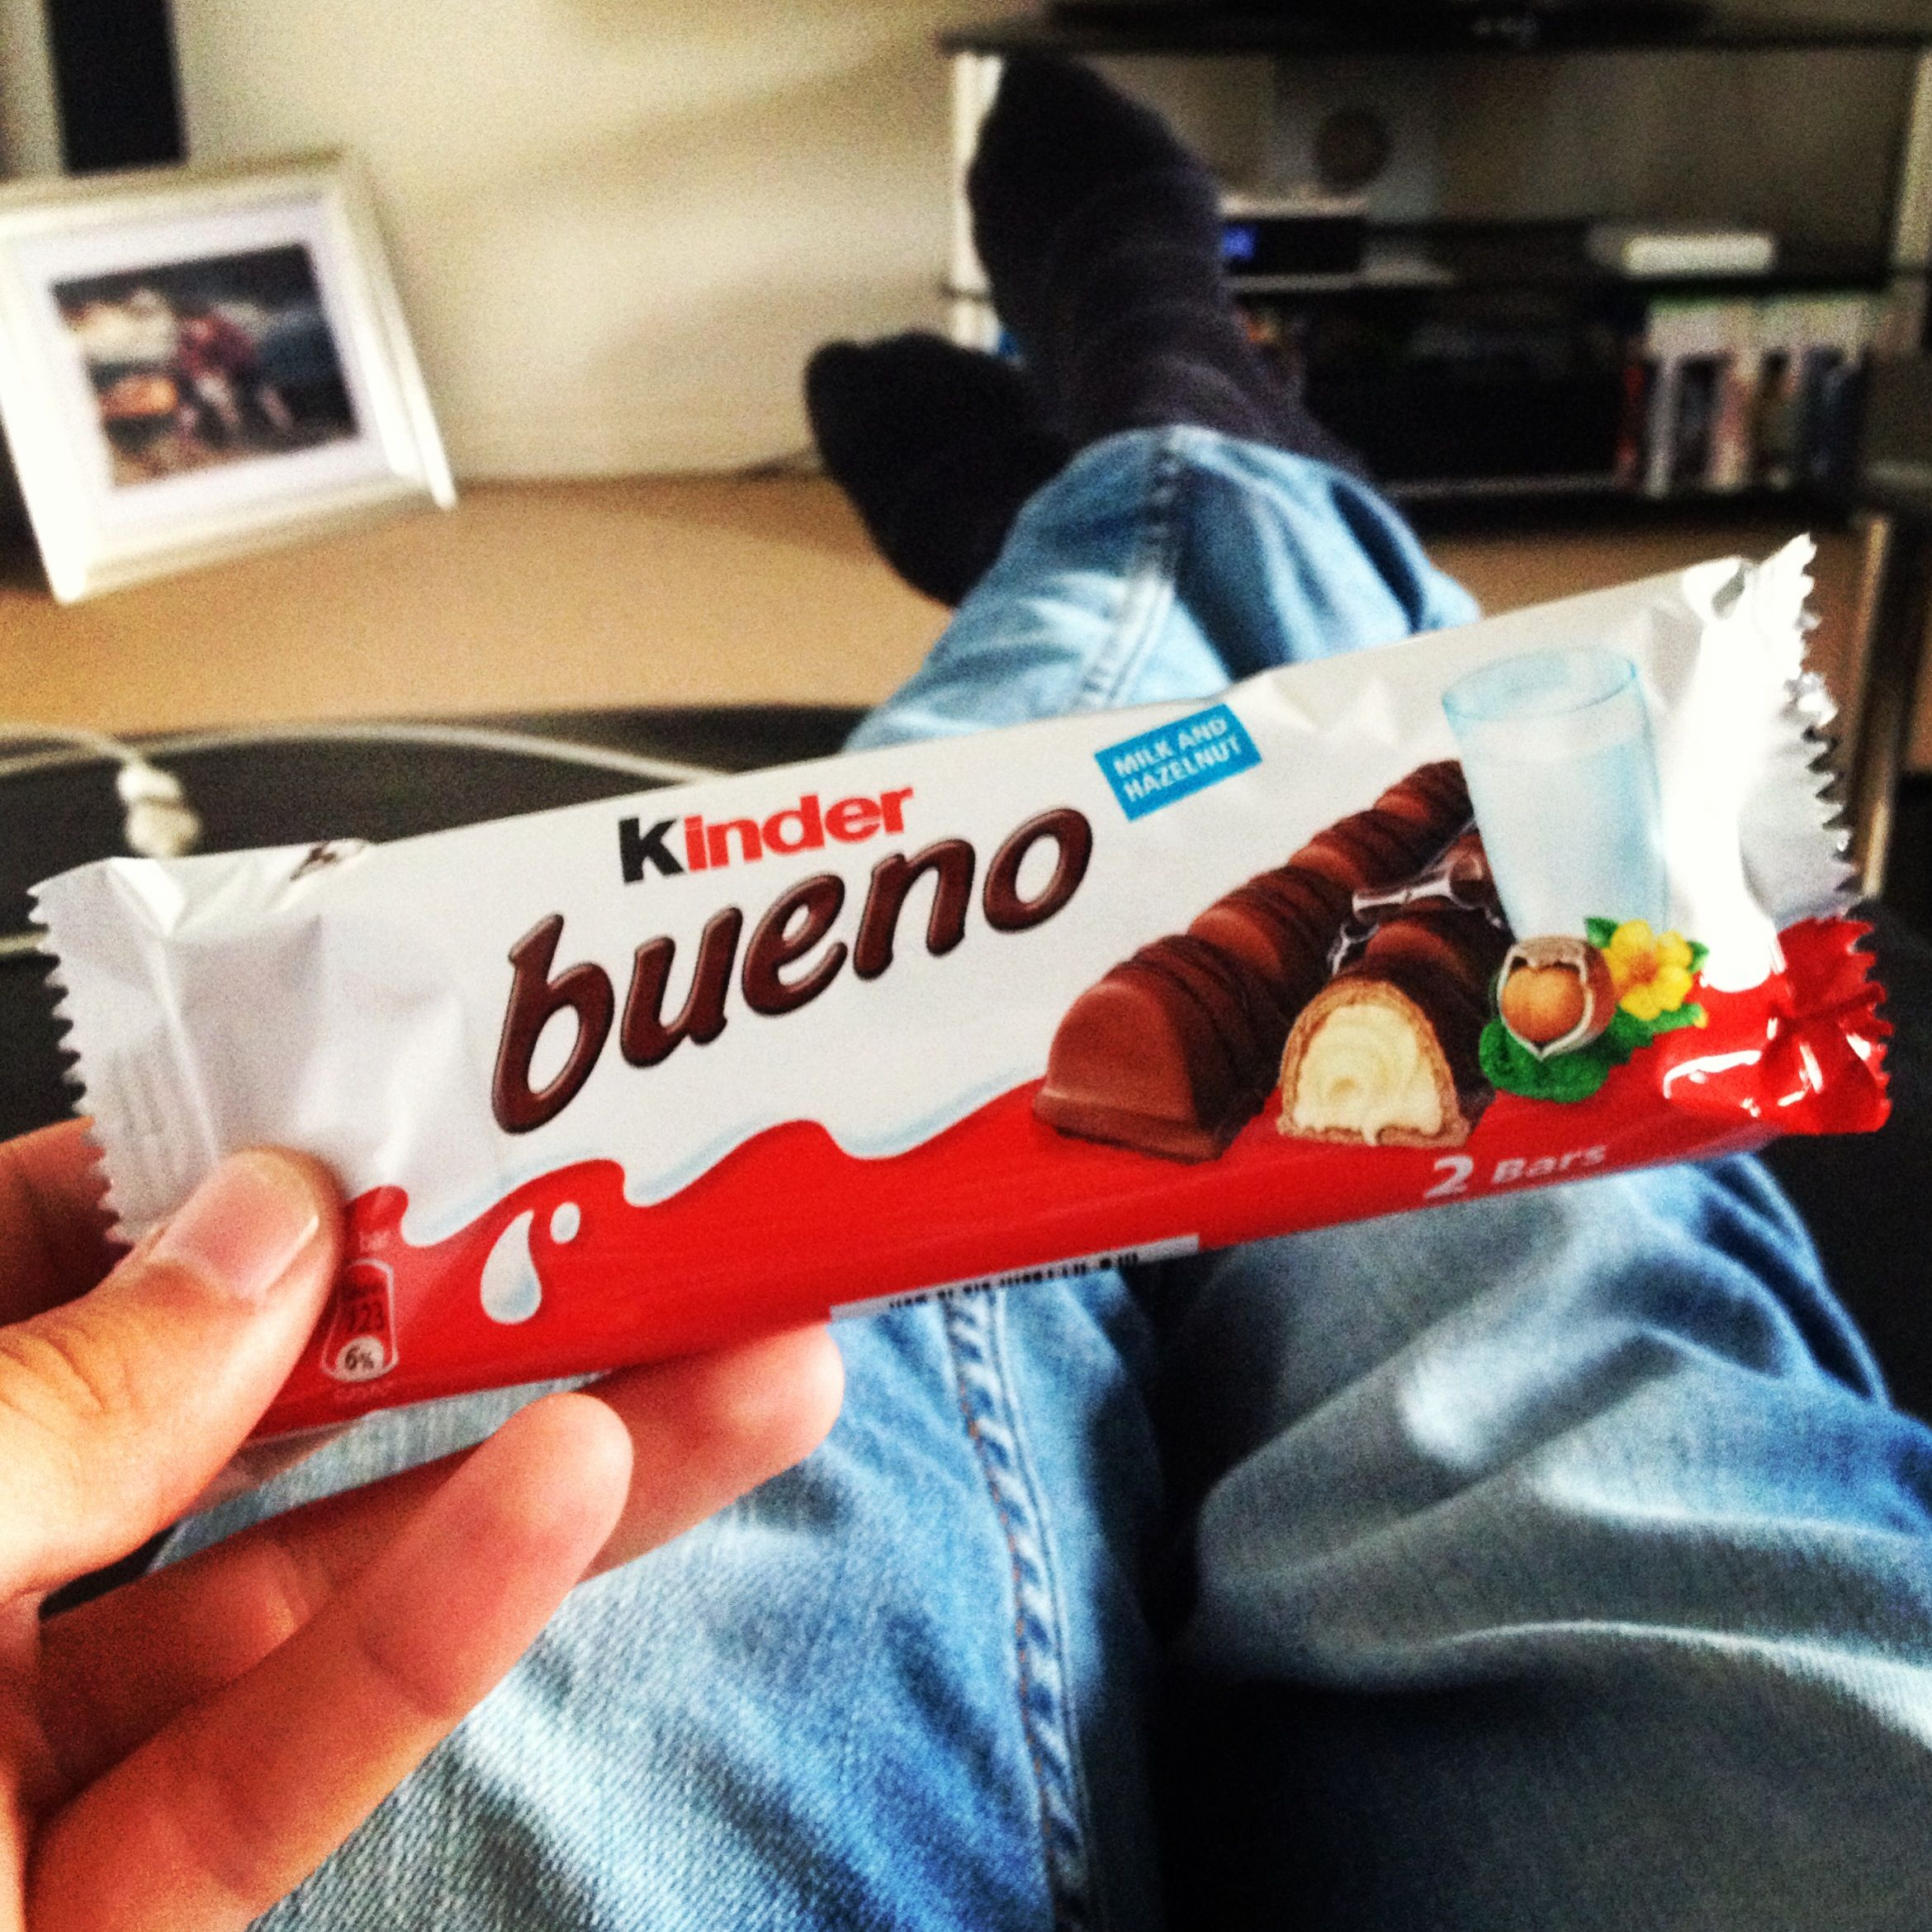 Kinder bueno, one of my favourite chocolate bars ever.